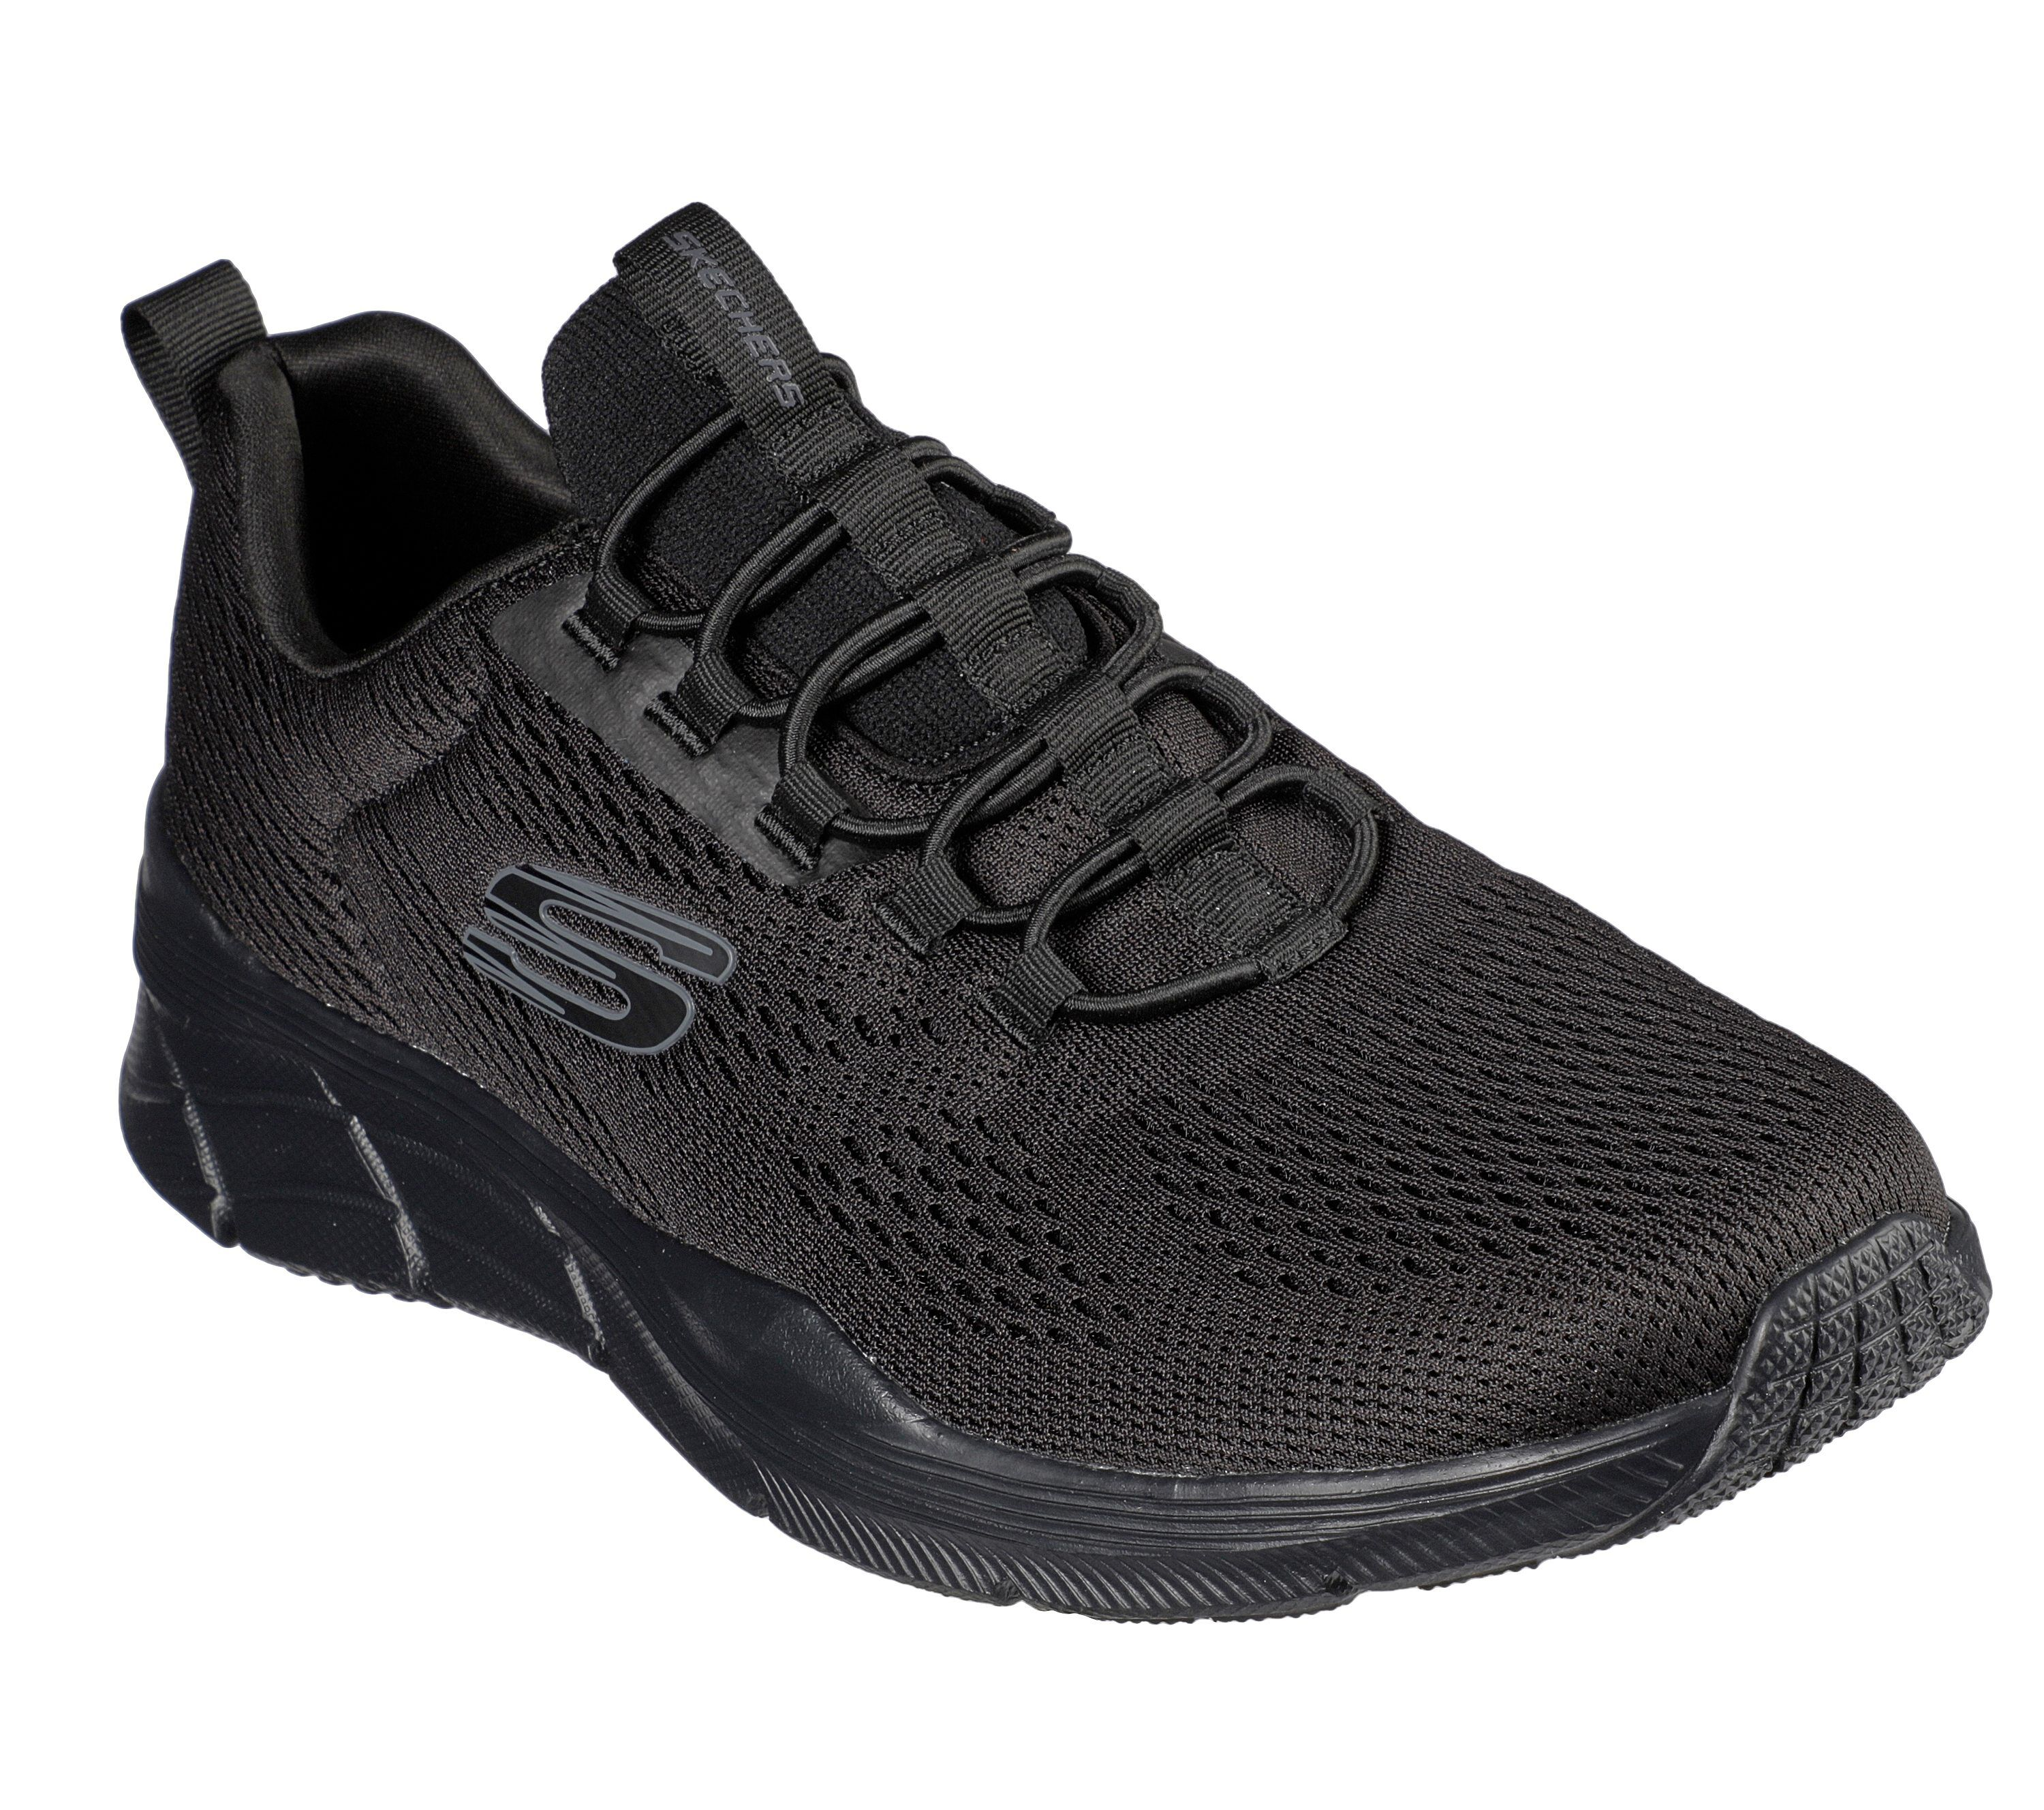 Shop Men's Shoes by Width   Wide, Extra